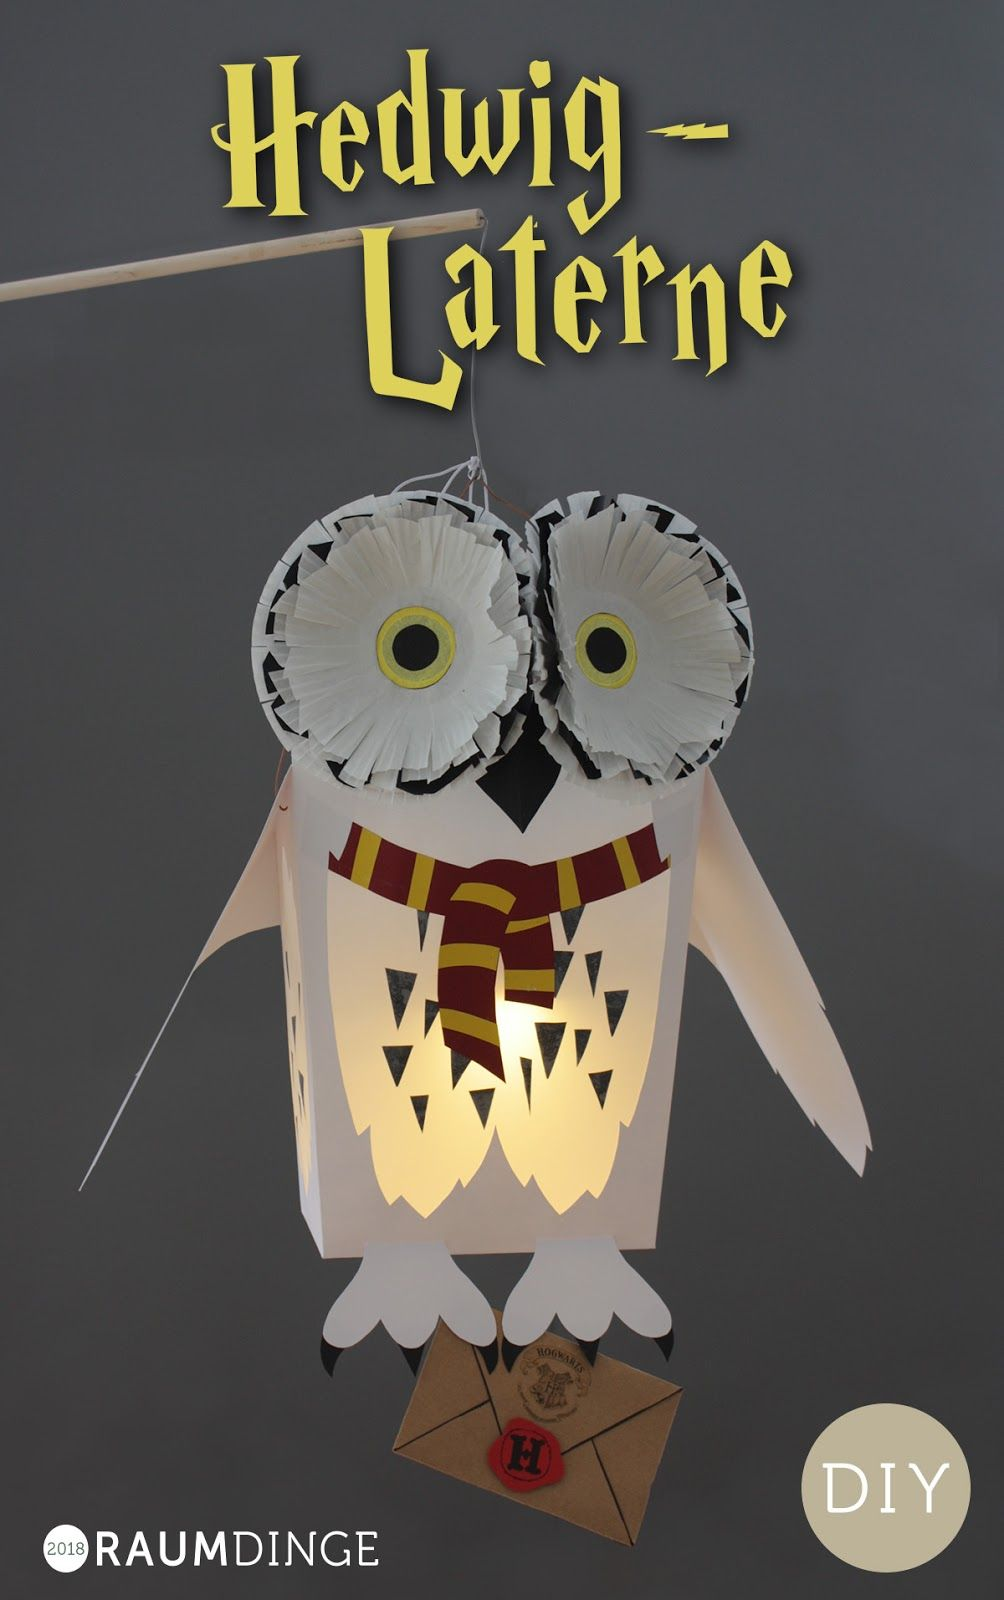 Hedwig Laterne Harry Potter DIY Download Laterne basteln #laternebasteln